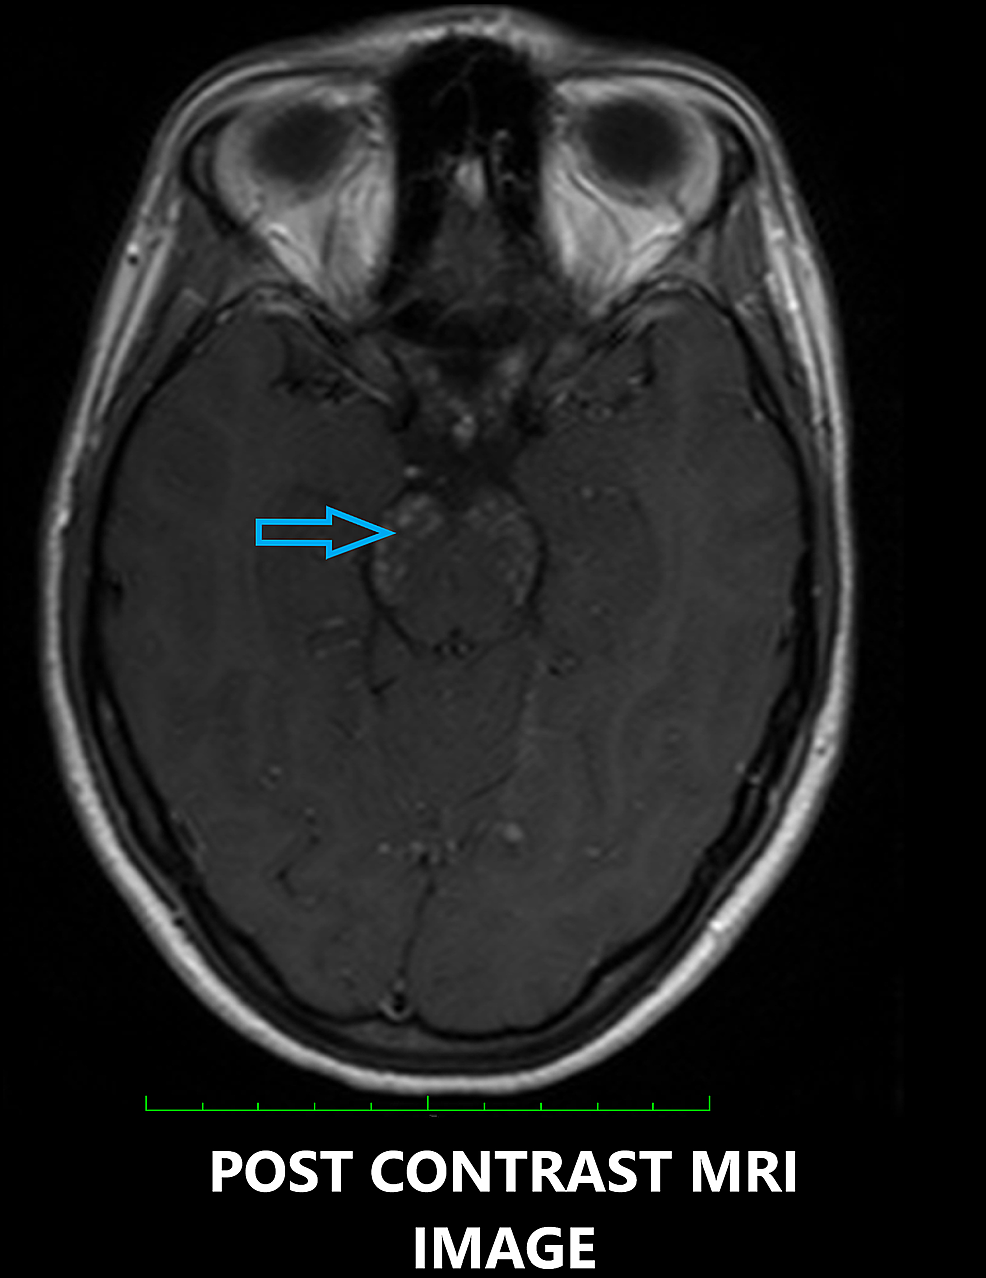 Contrast-enhanced-axial-magnetic-resonance-imaging-(MRI)-showing-peppered-post-contrast-enhancement-in-the-pons-(blue-arrow).